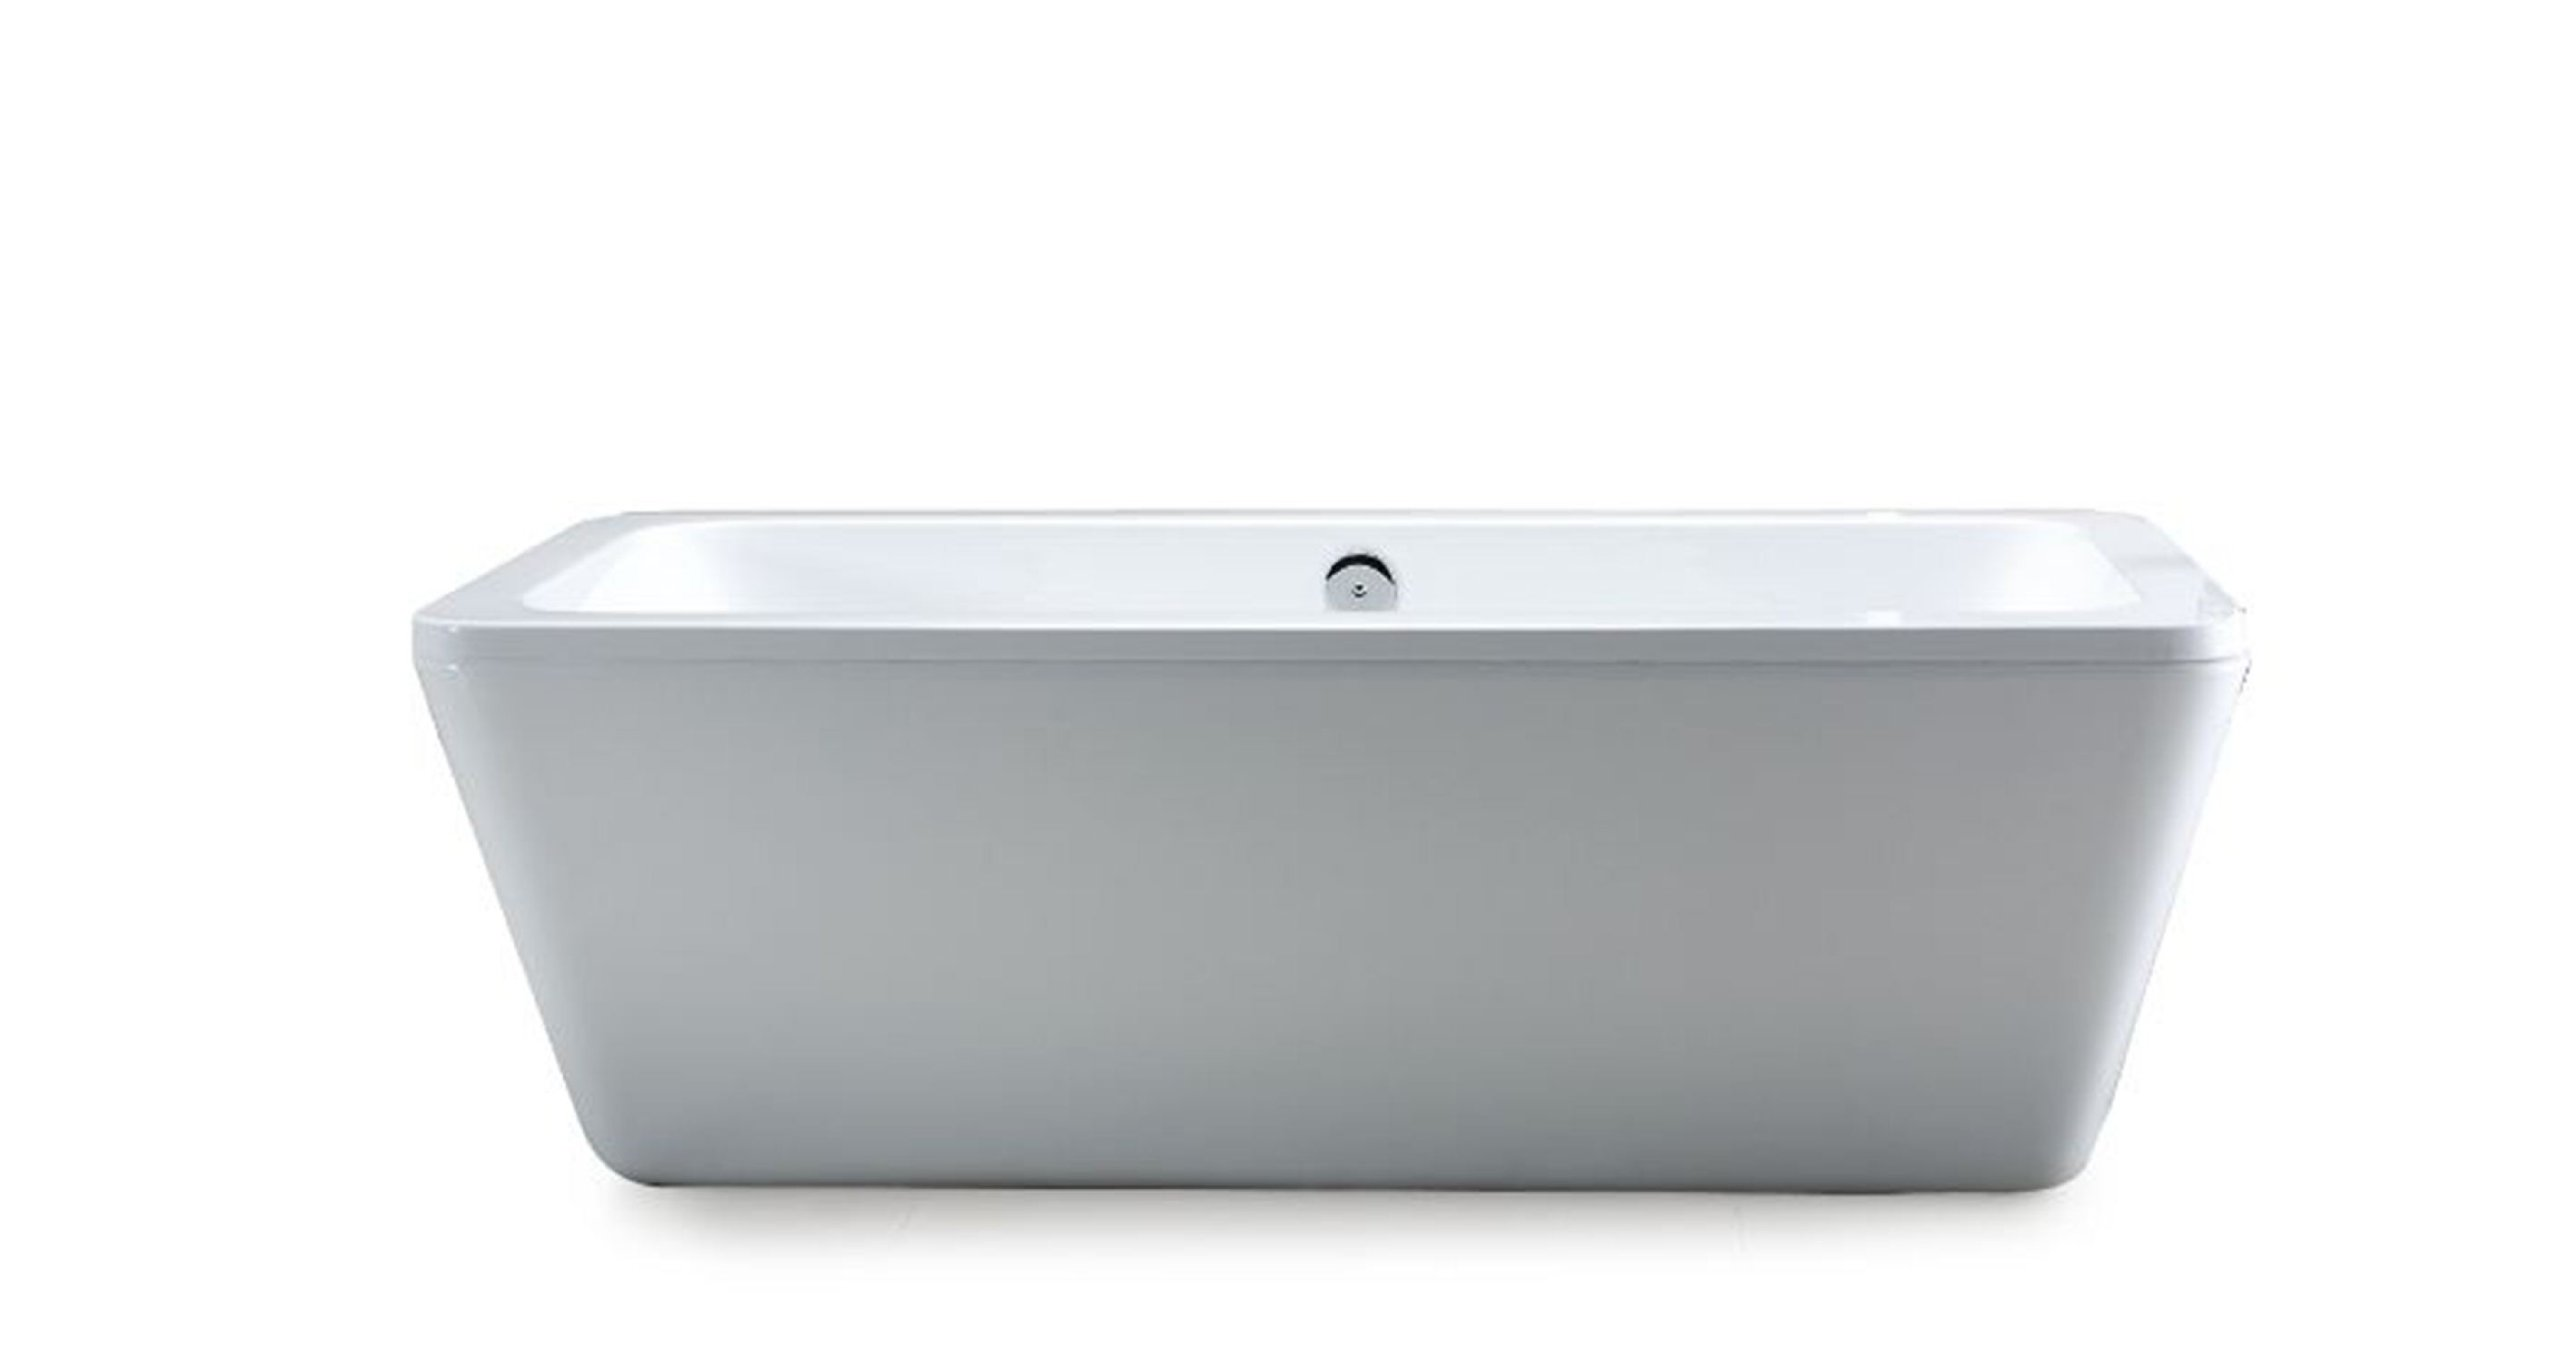 Ove Decors Kido 69-Inch Freestanding Acrylic Bathtub, Glossy White by Ove Decors